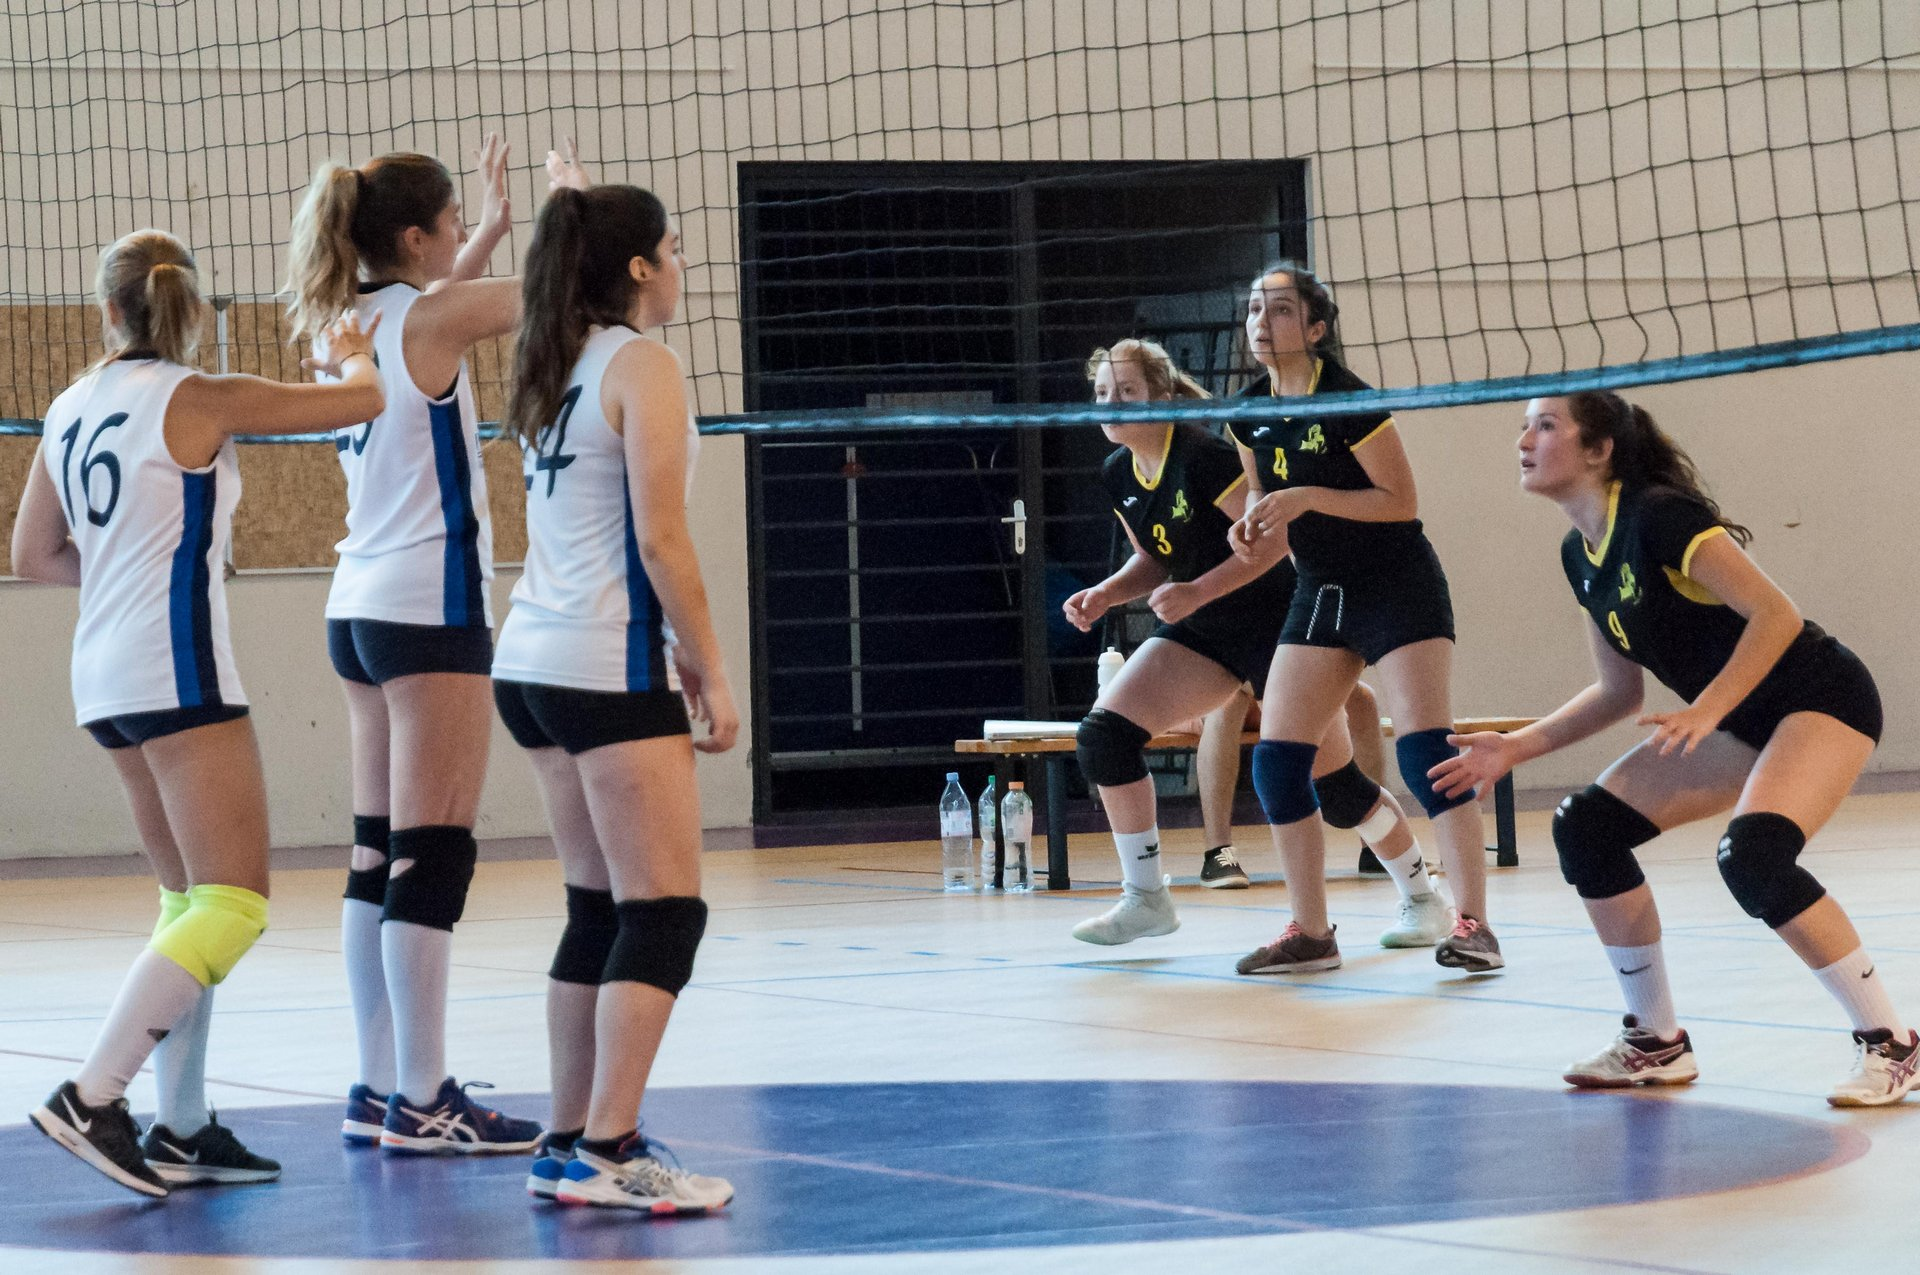 08_Volley_12_I. DURAND - 10